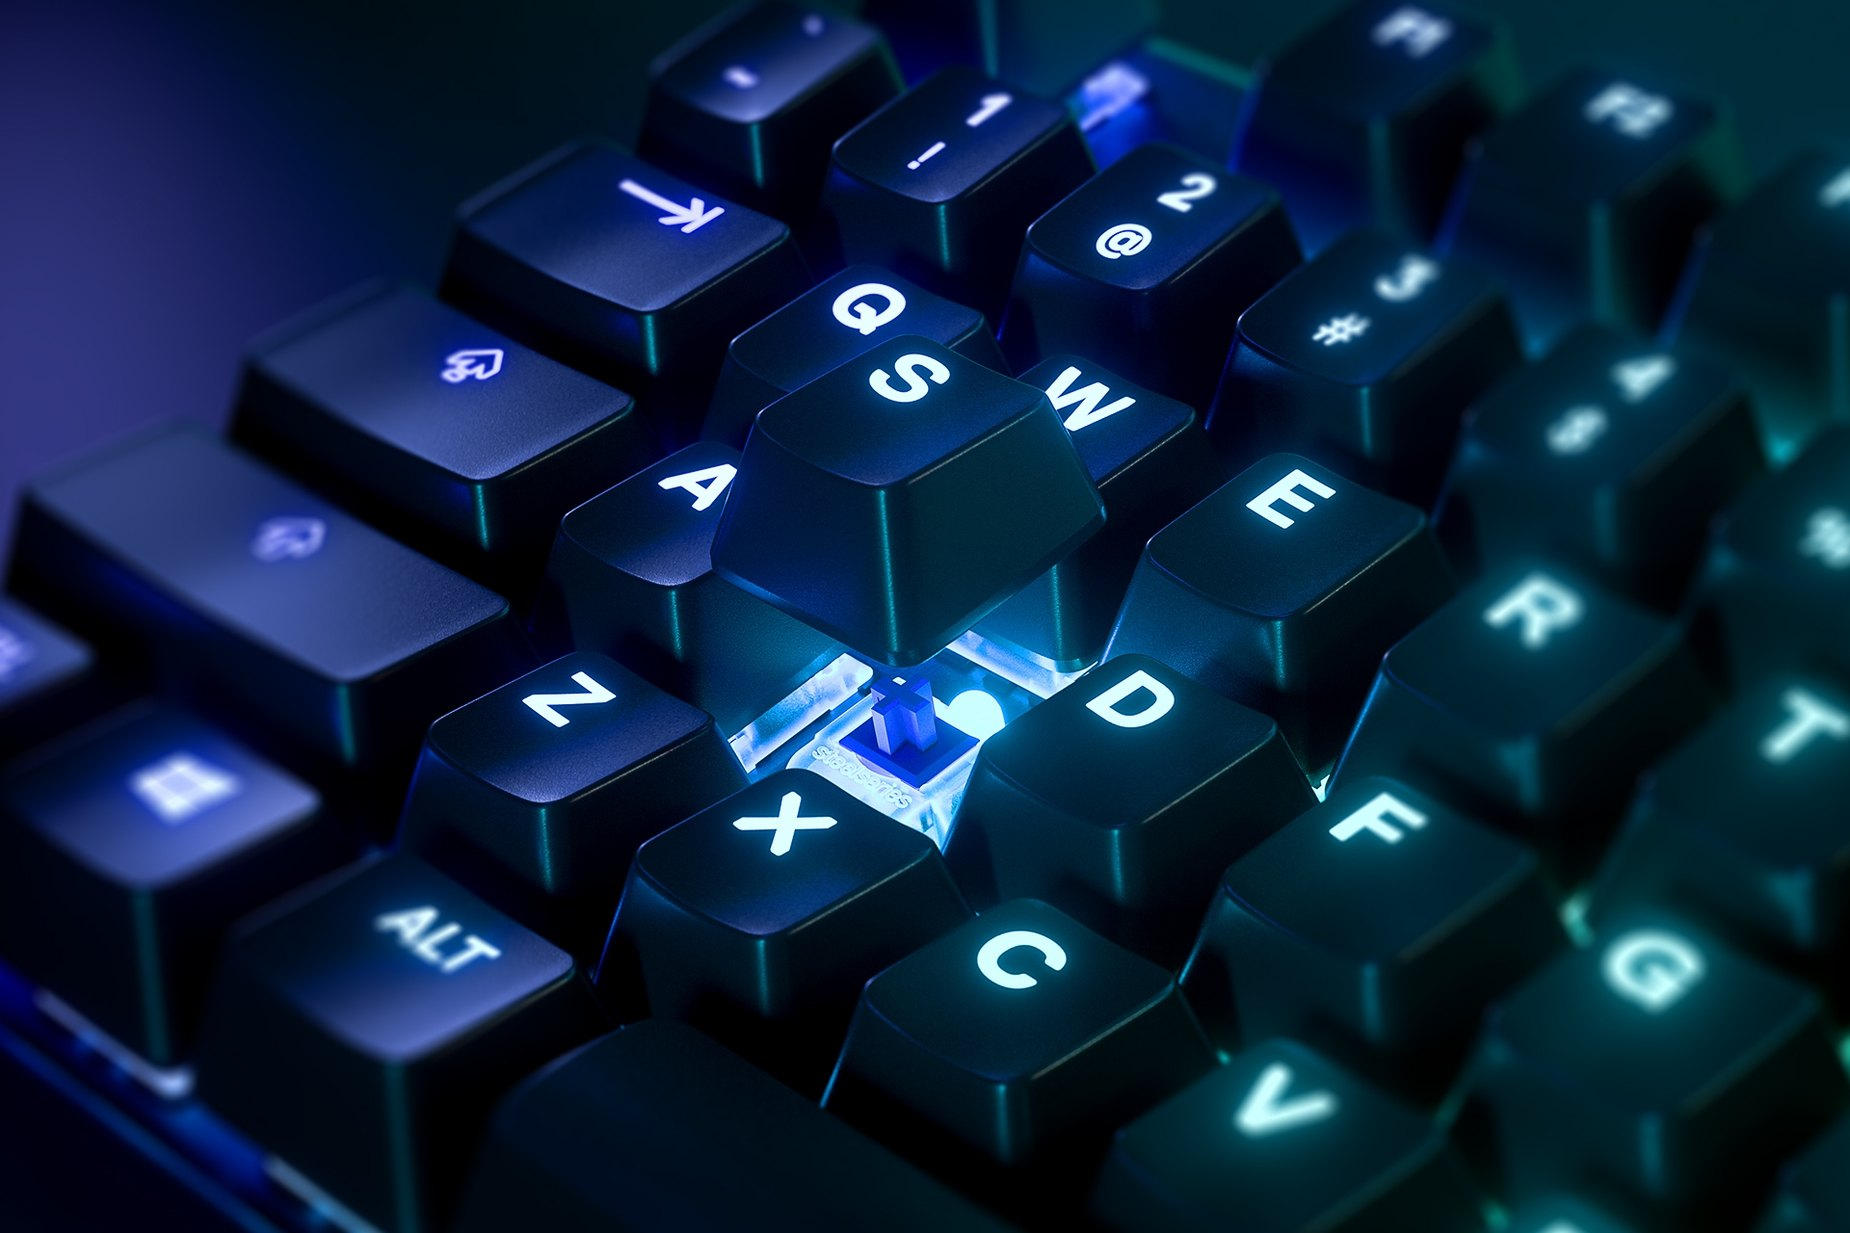 Zoomed in view of a single key on the UK English - Apex 7 TKL (Blue Switch) gaming keyboard, the key is raised up to show the SteelSeries QX2 Mechanical RGB Switch underneath